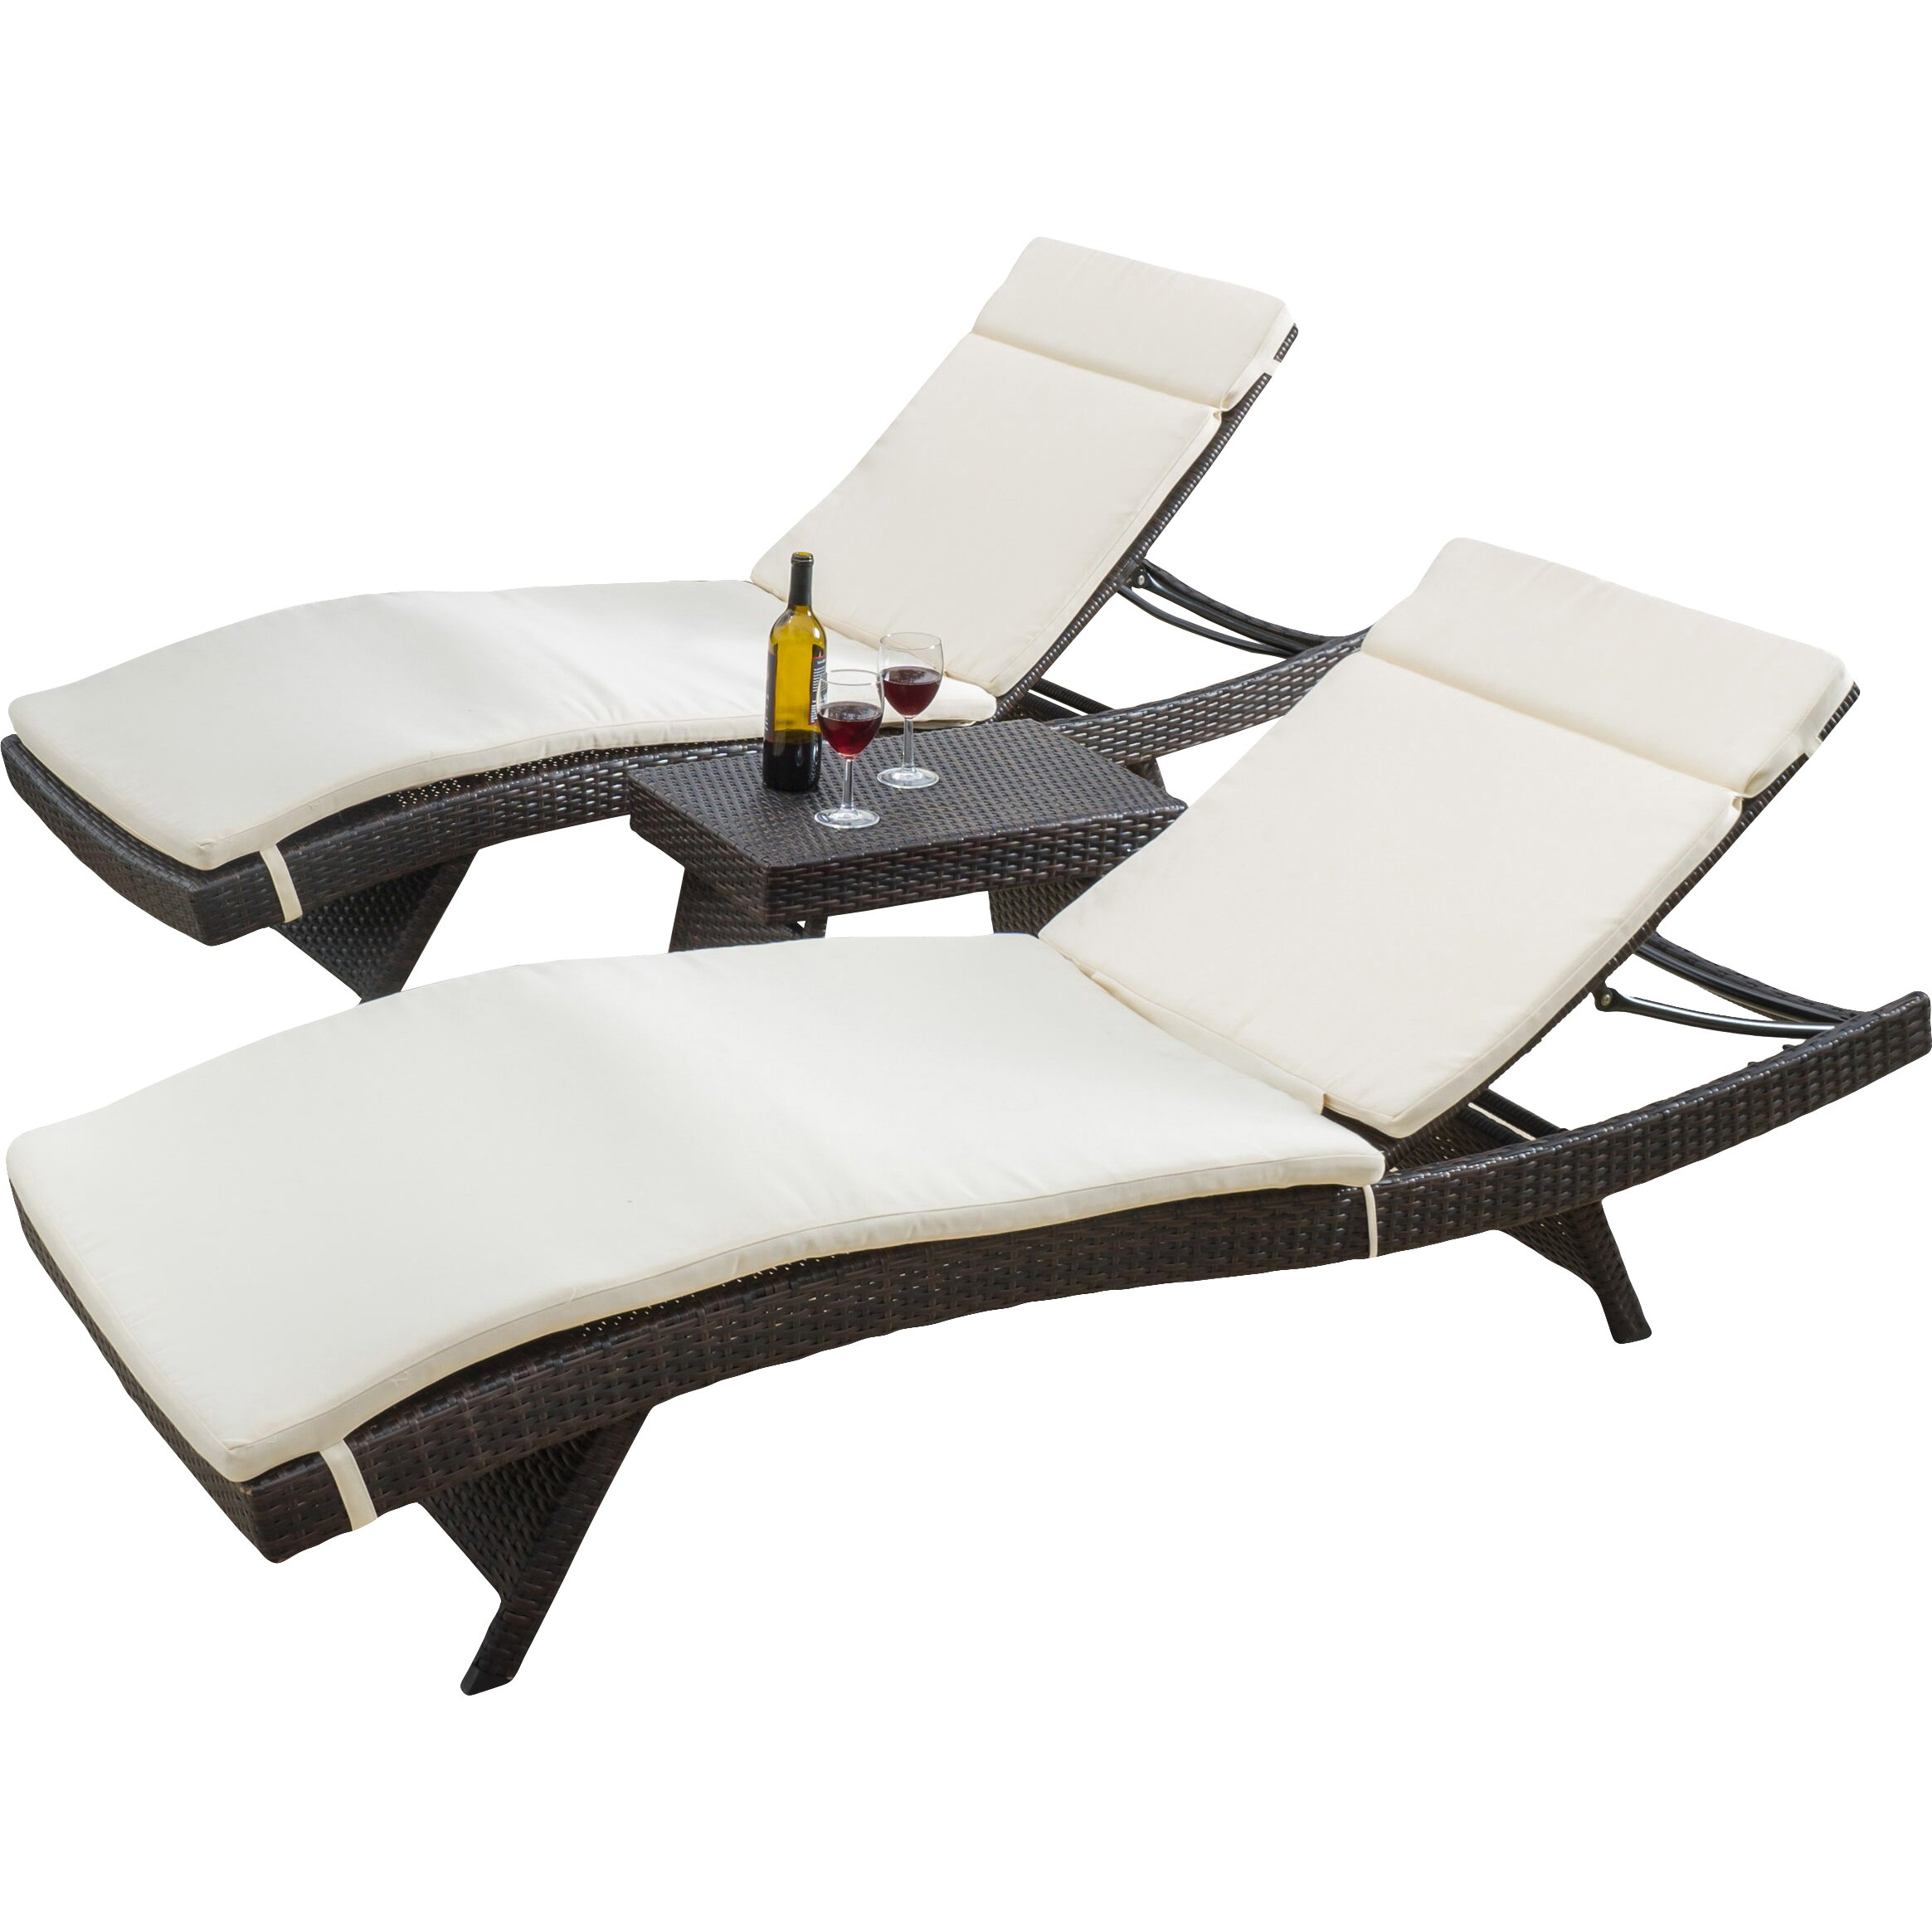 Home Loft Concepts Rio Vista 3 Piece Chaise Lounge Set with Cushion & Reviews